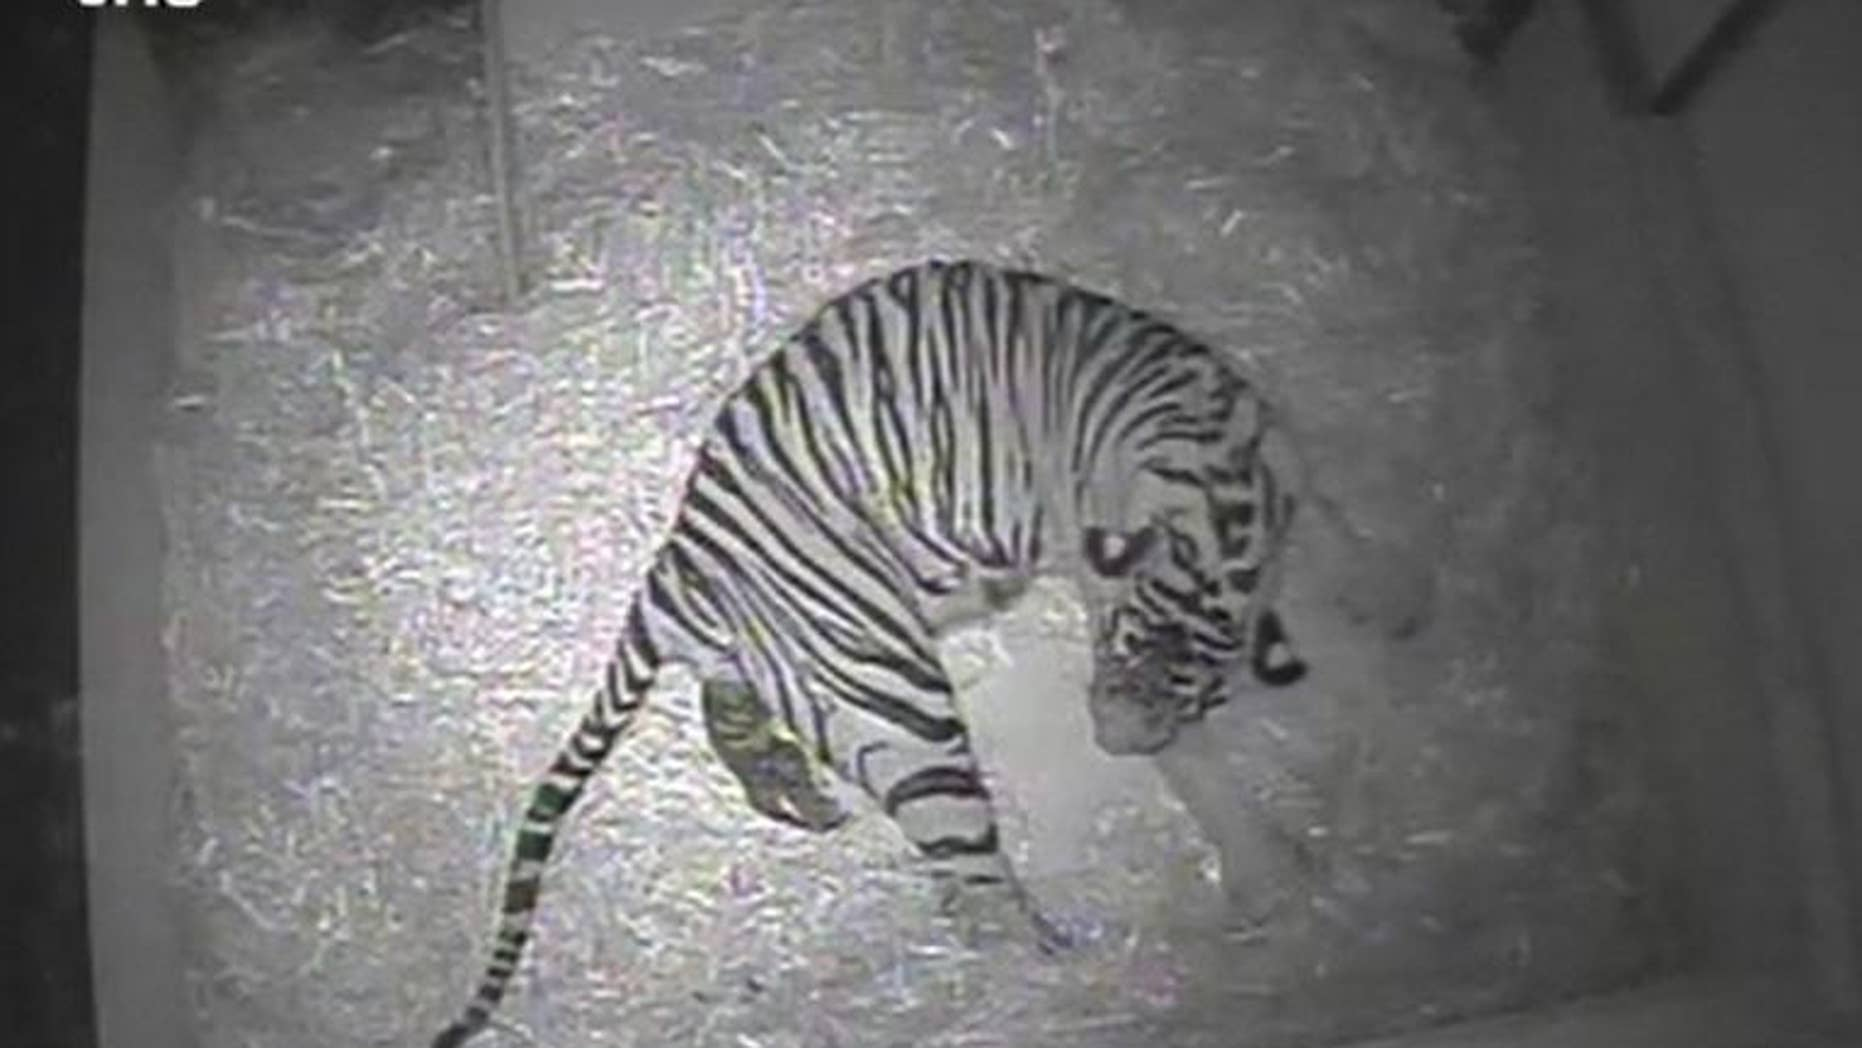 Screengrab released by ZSL London from a video taken by a hidden camera at London Zoo on September 22, 2013 shows five-year-old Sumatran tiger Merati giving birth to a single cub